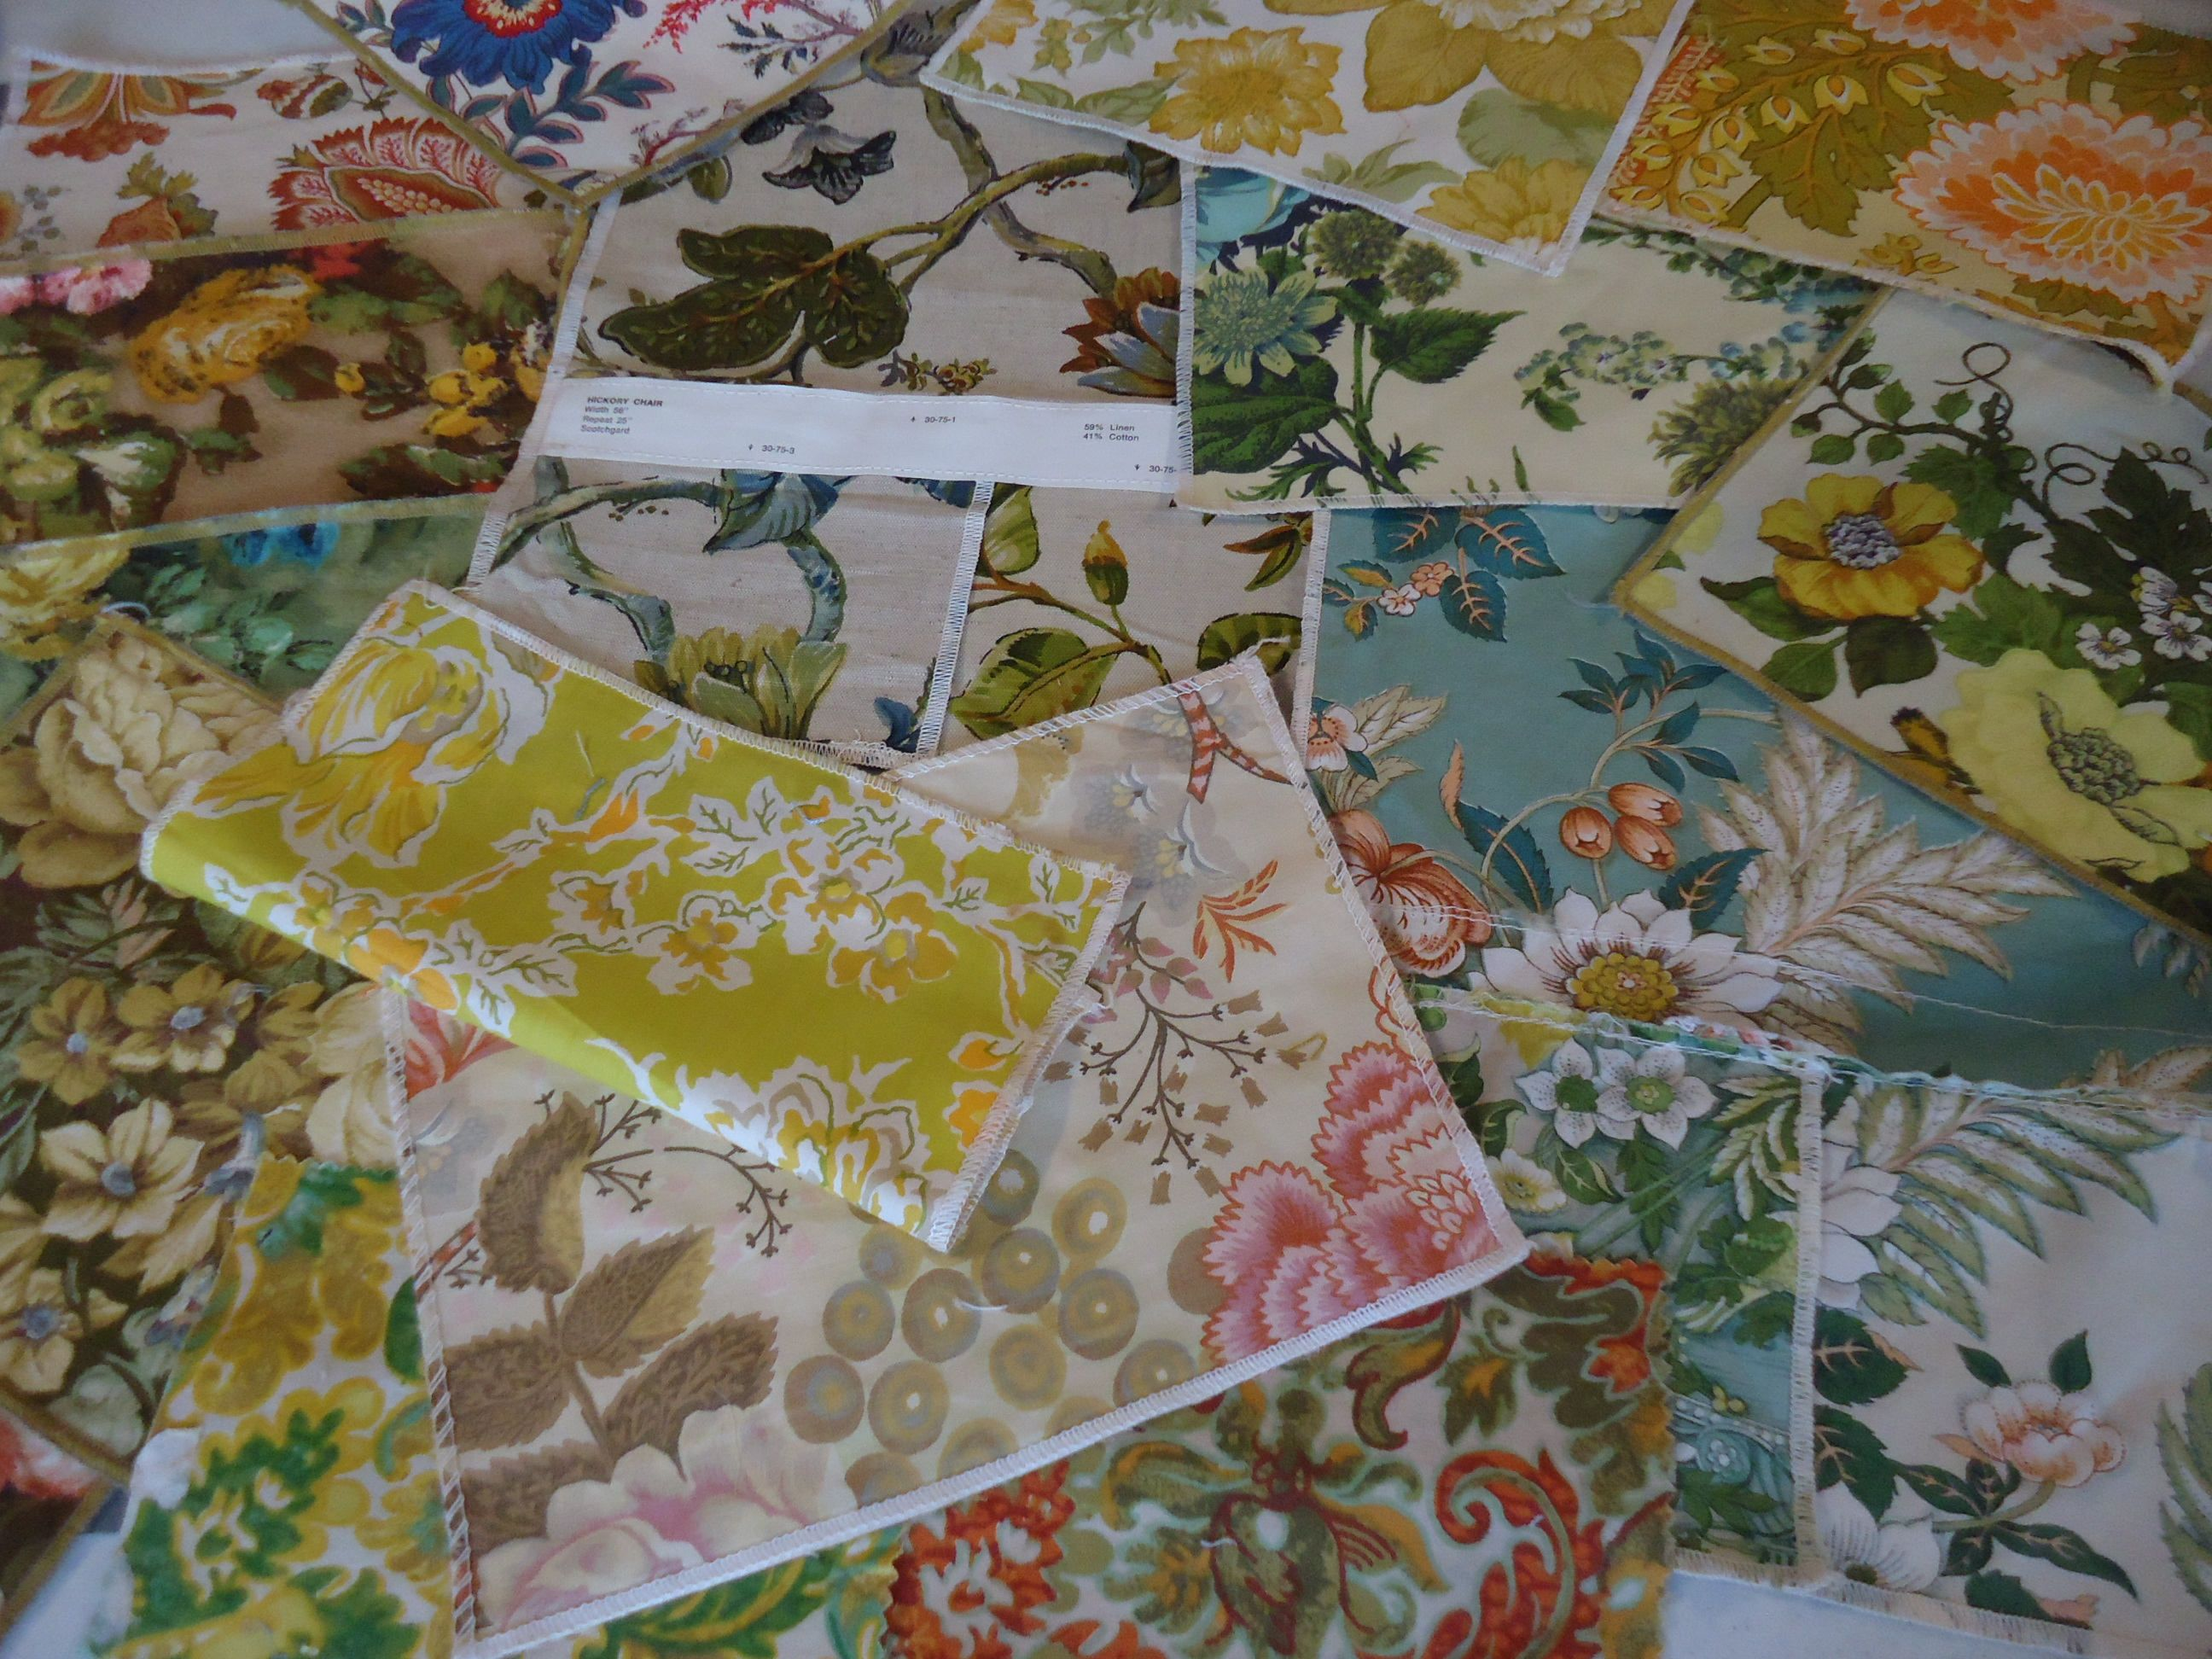 Vintage Upholstery Fabric Samples Bold Colorful Florals Classic Colors Crafting Fabric Bundle Of Fun By Upholstery Fabric Samples Fabric Samples Fabric Bundle